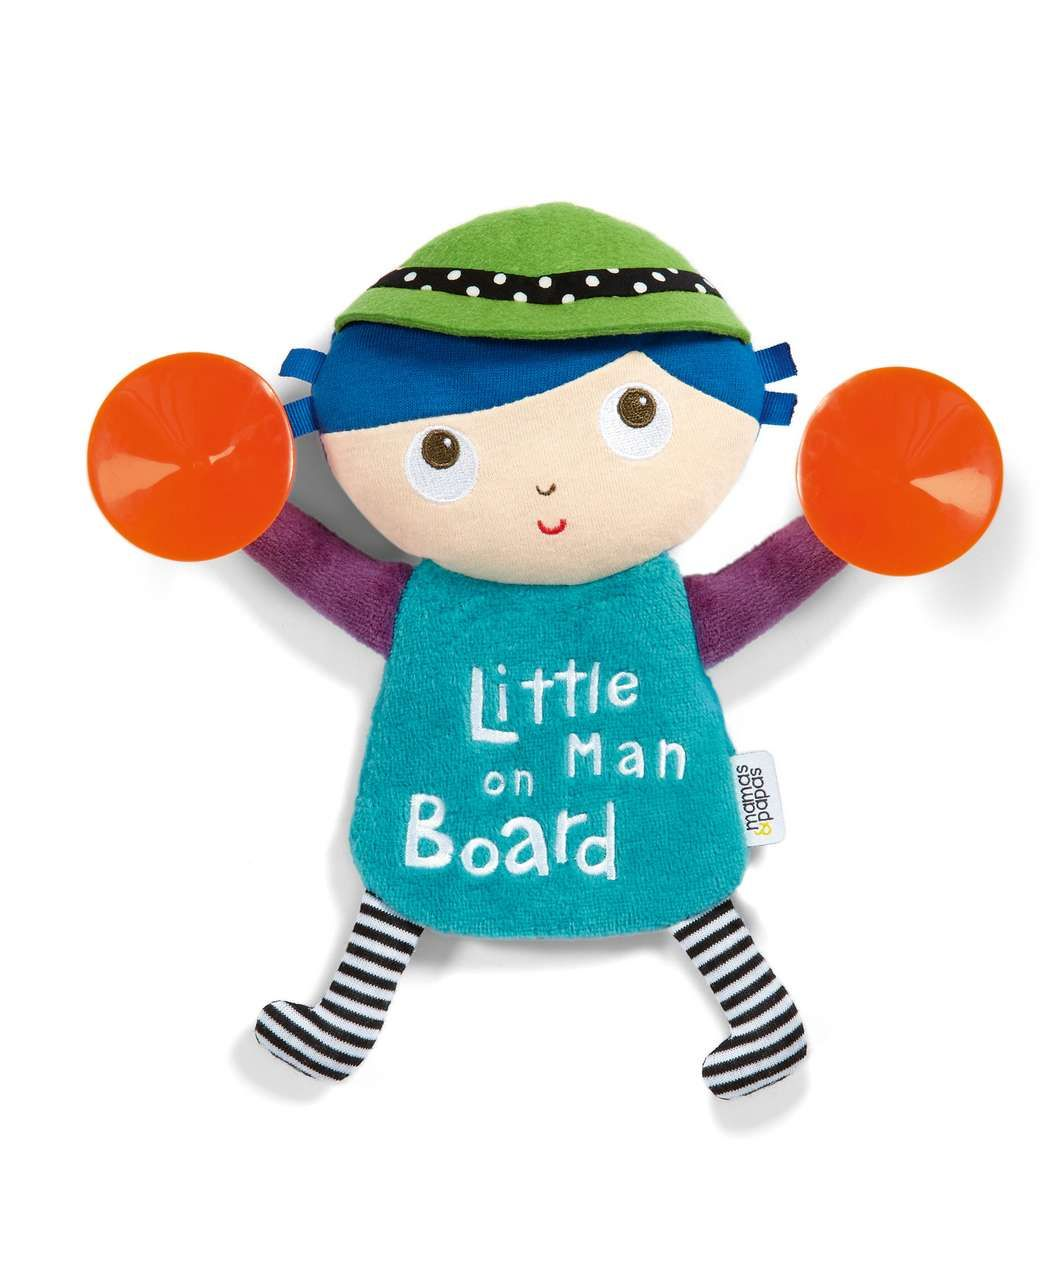 Little people car toys  Babyplay  Little Man On Board Sign  Car Accessories  Mamas